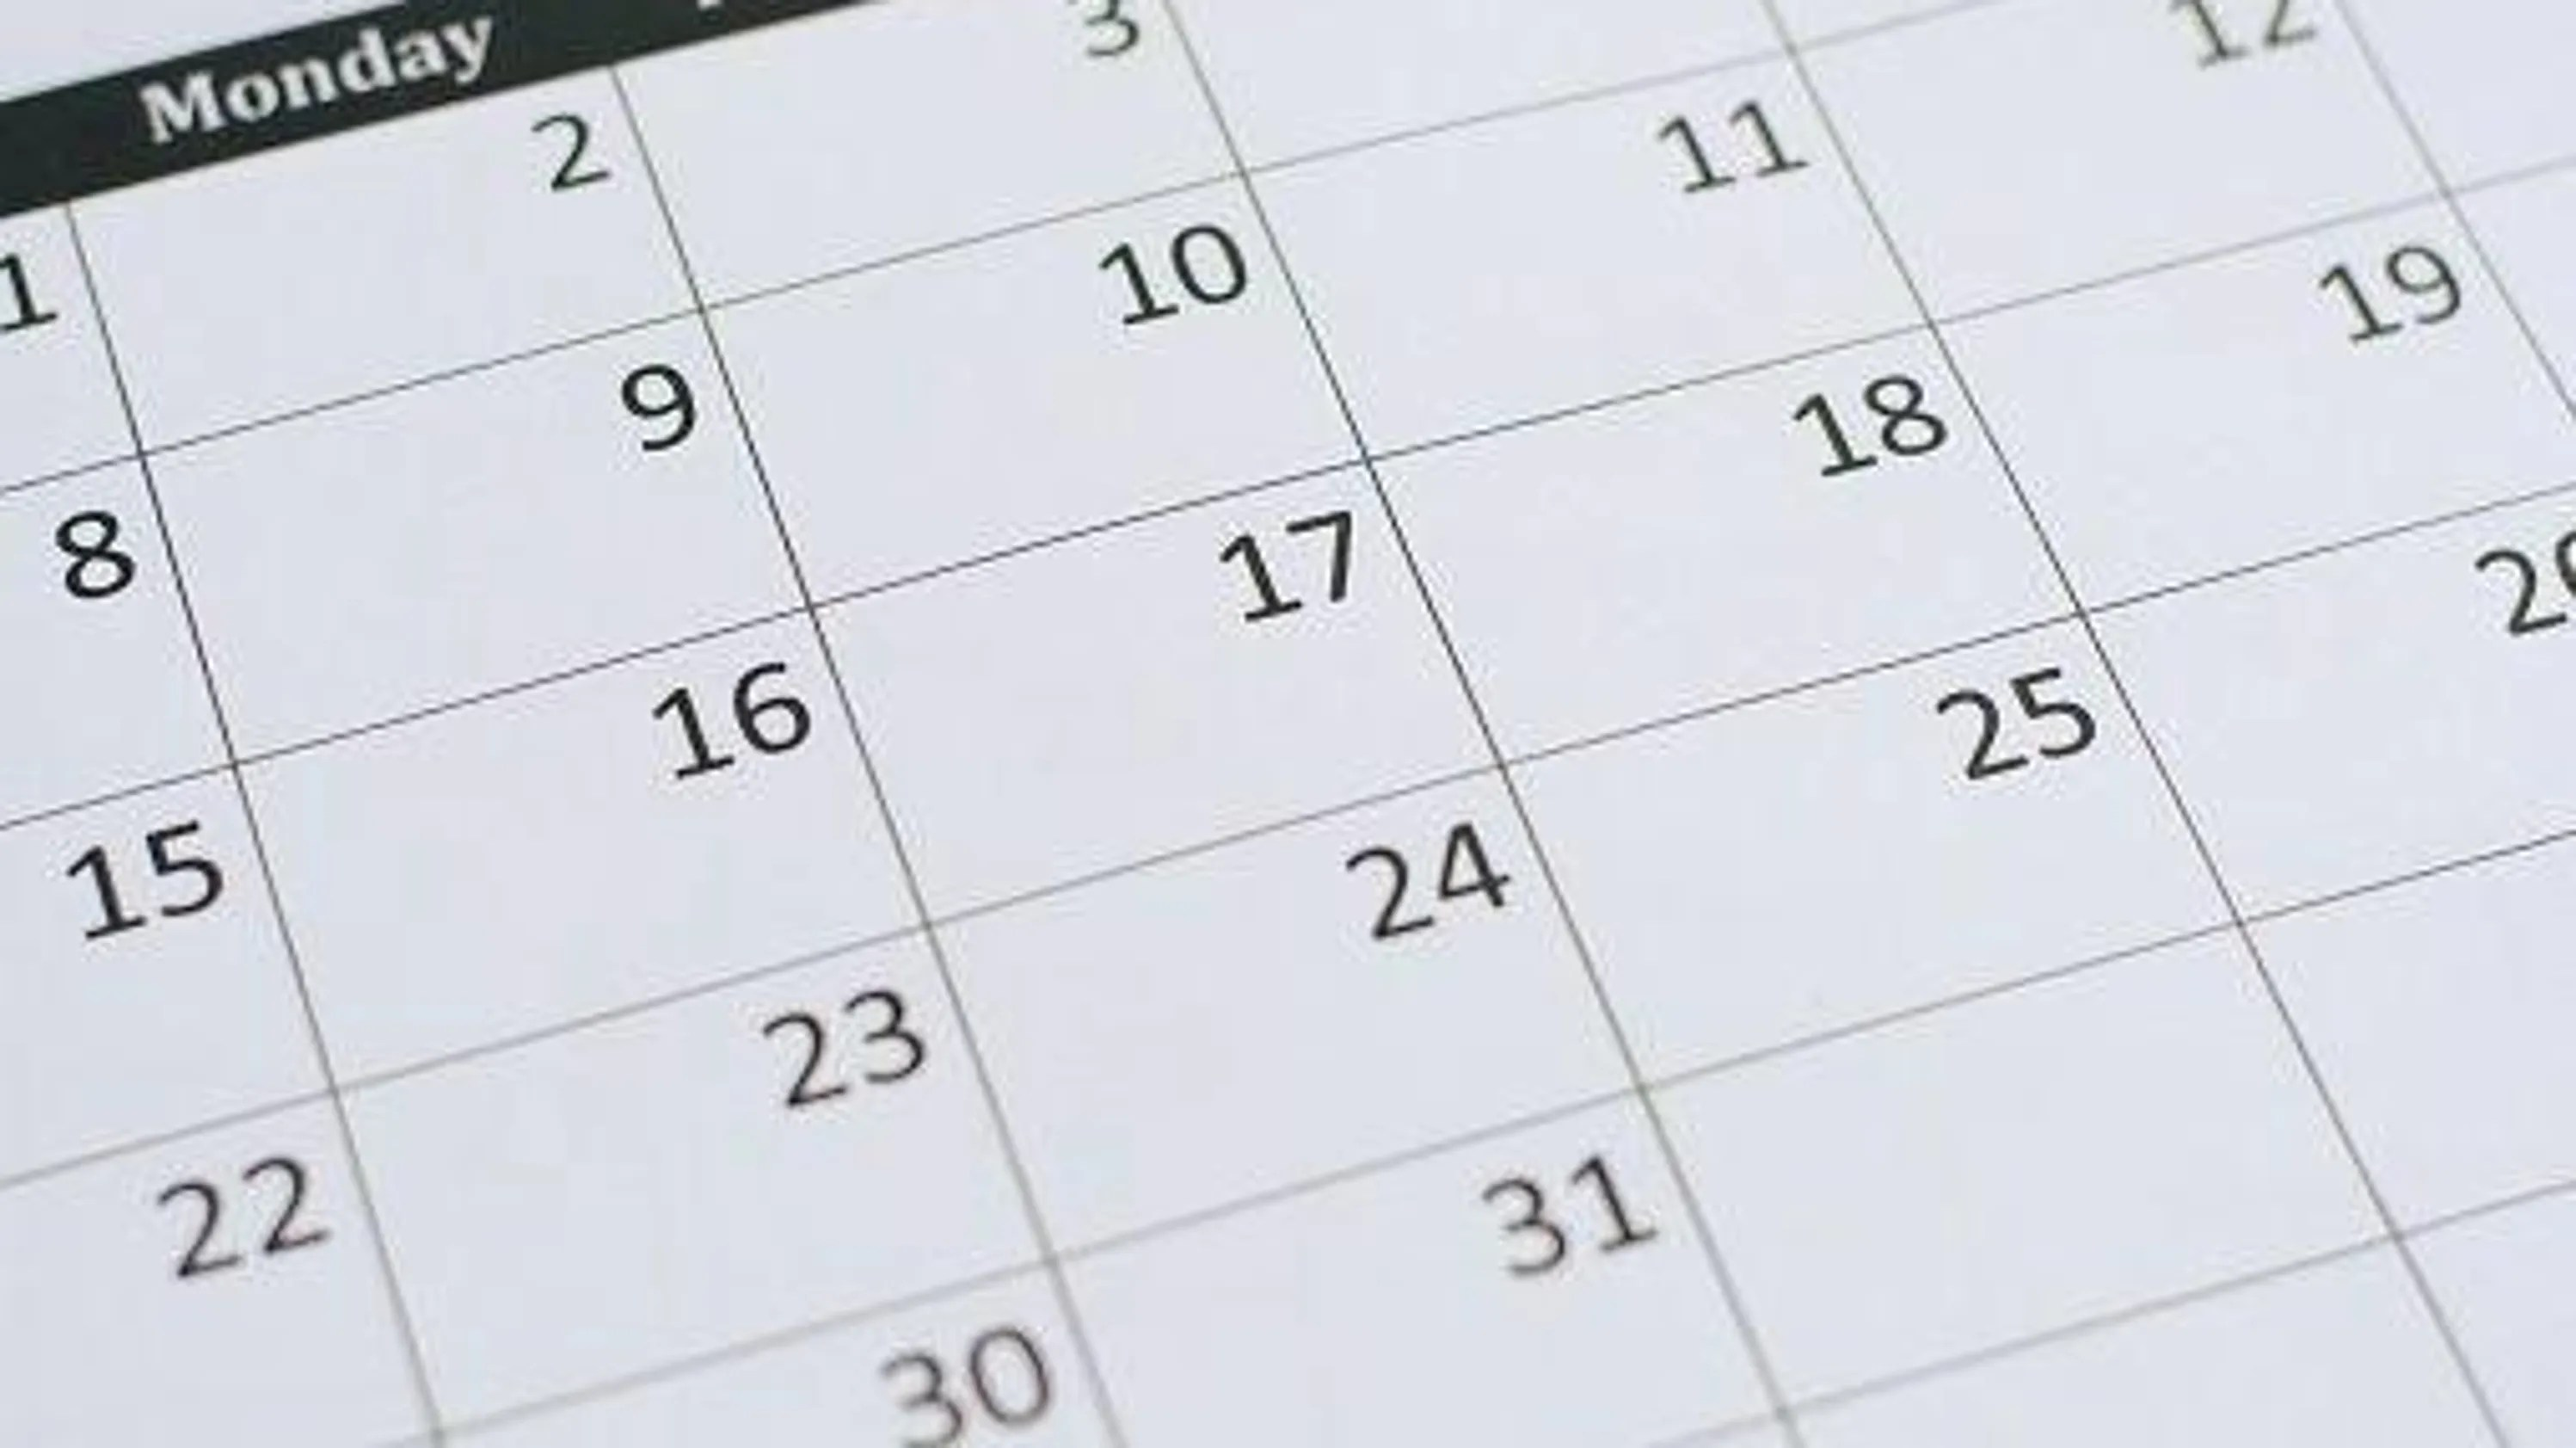 Door County Calendar Of Events March 10 To April 3